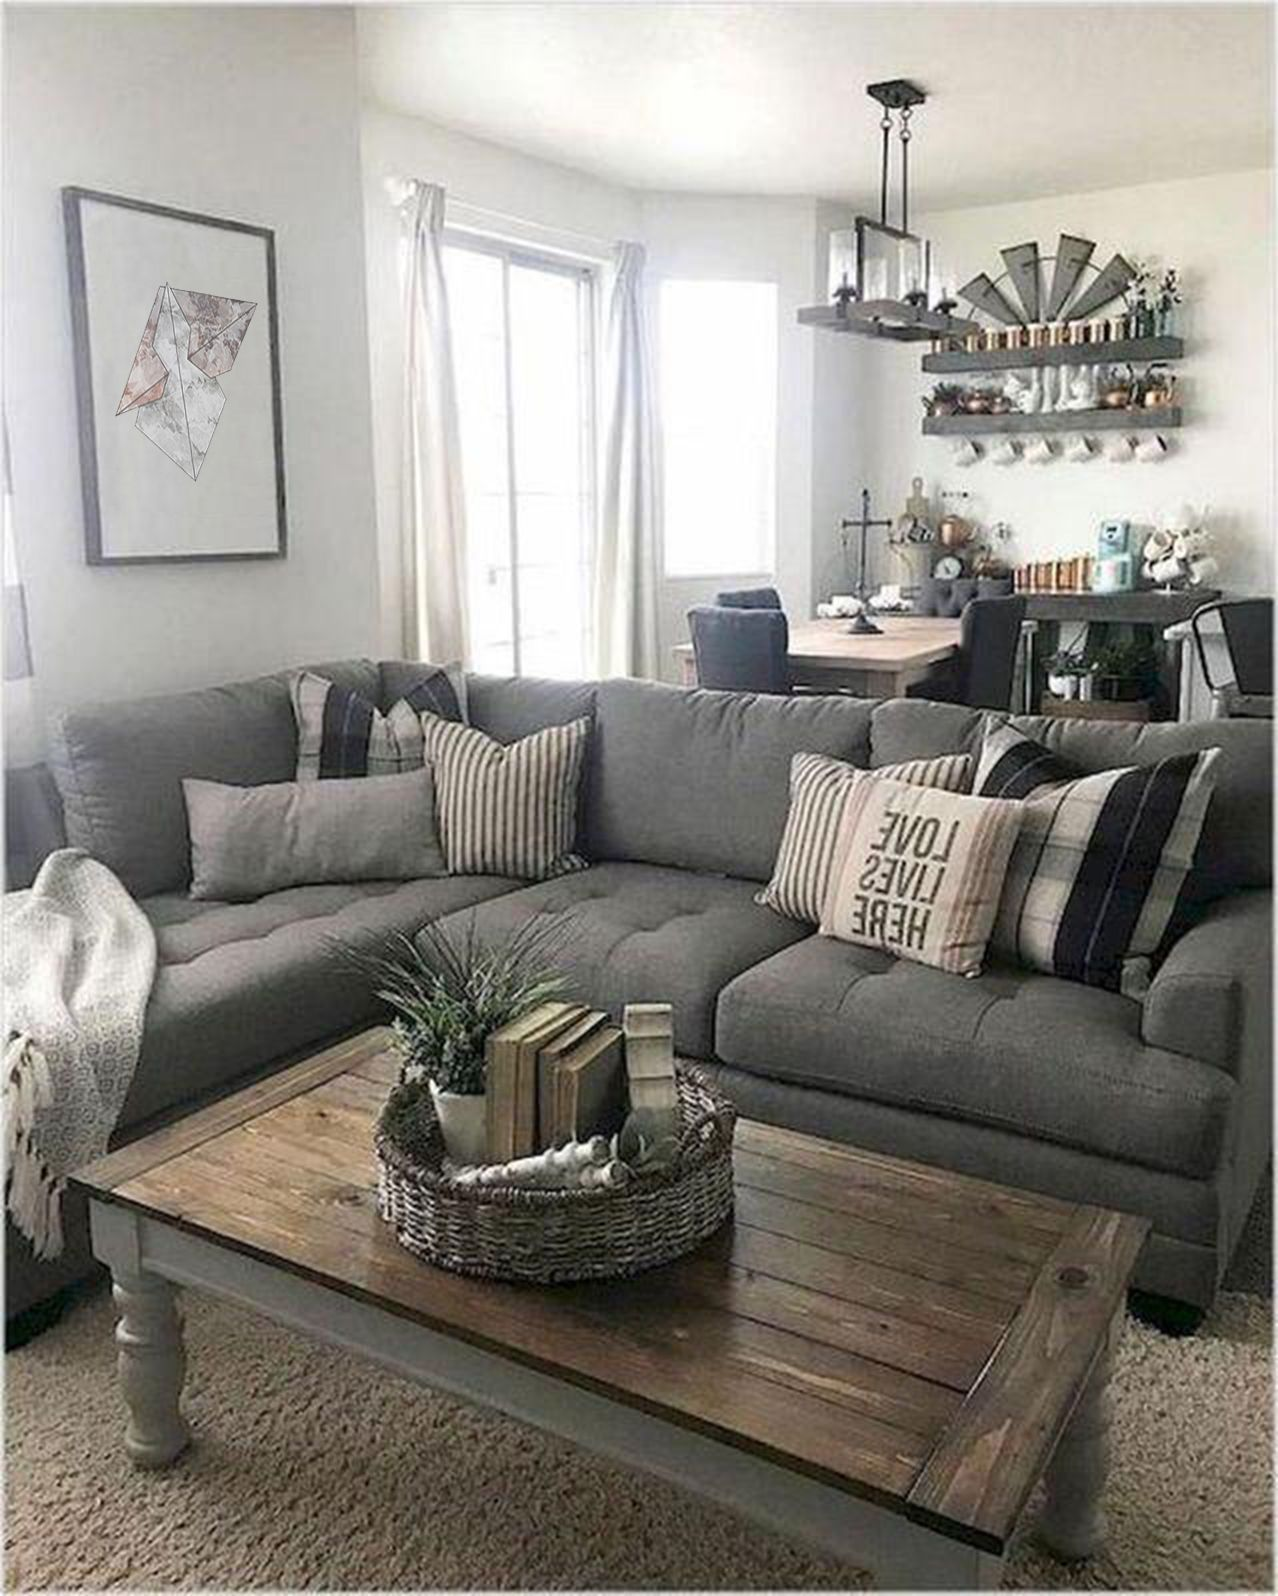 50 Inspirational Living Room Ideas in 2020 | Farmhouse decor living room,  Farmhouse living room furniture, Farm house living room